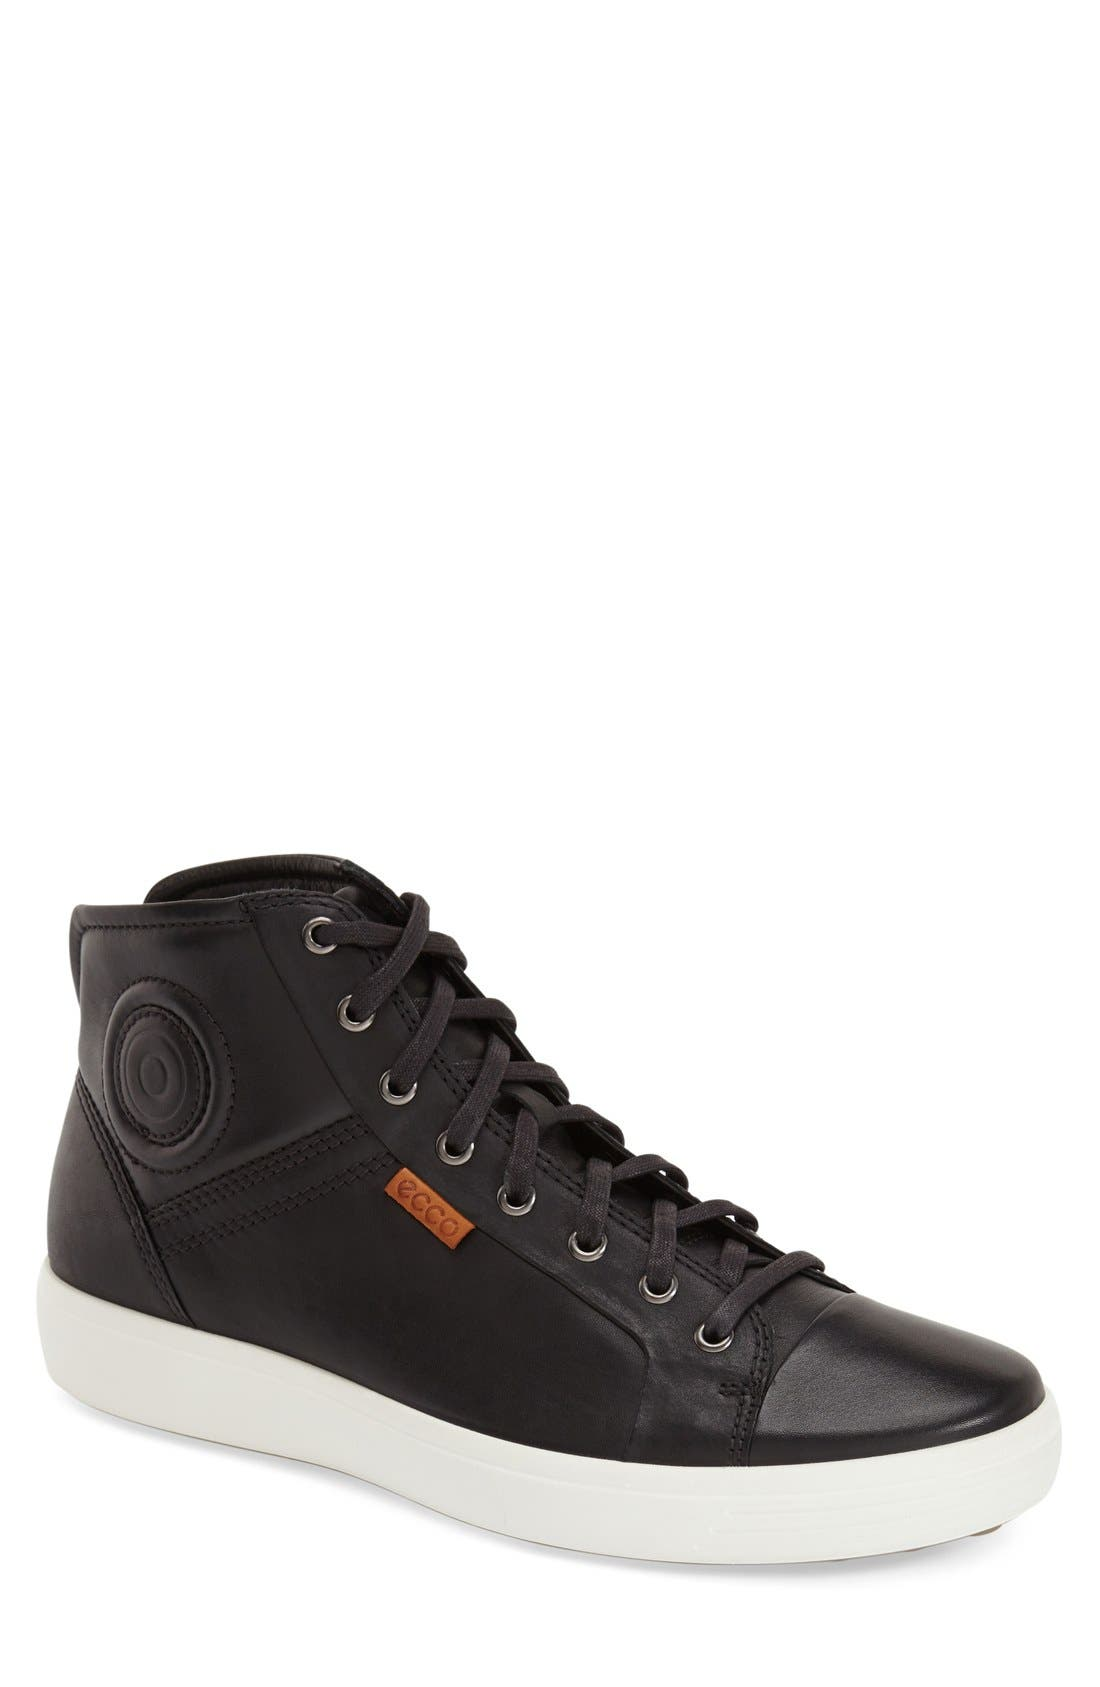 'Soft 7' High Top Sneaker,                         Main,                         color, BLACK LEATHER